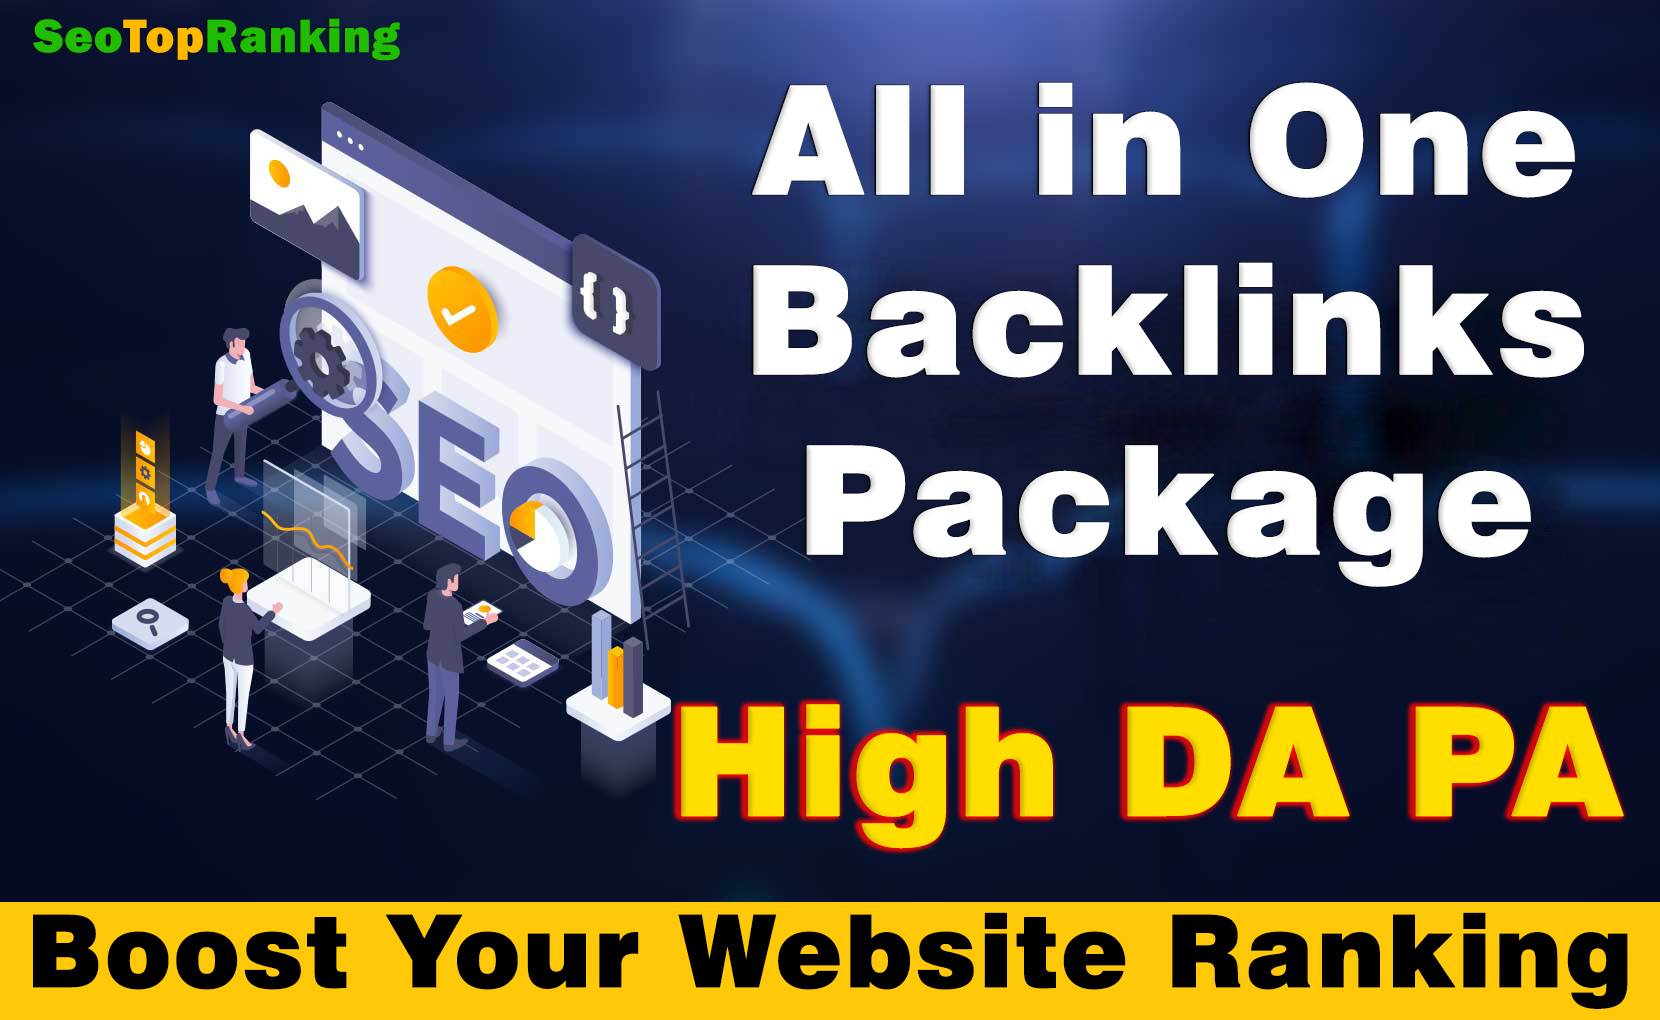 Get All in one backlinks package boost your ranking on Google with High-quality SEO backlinks.